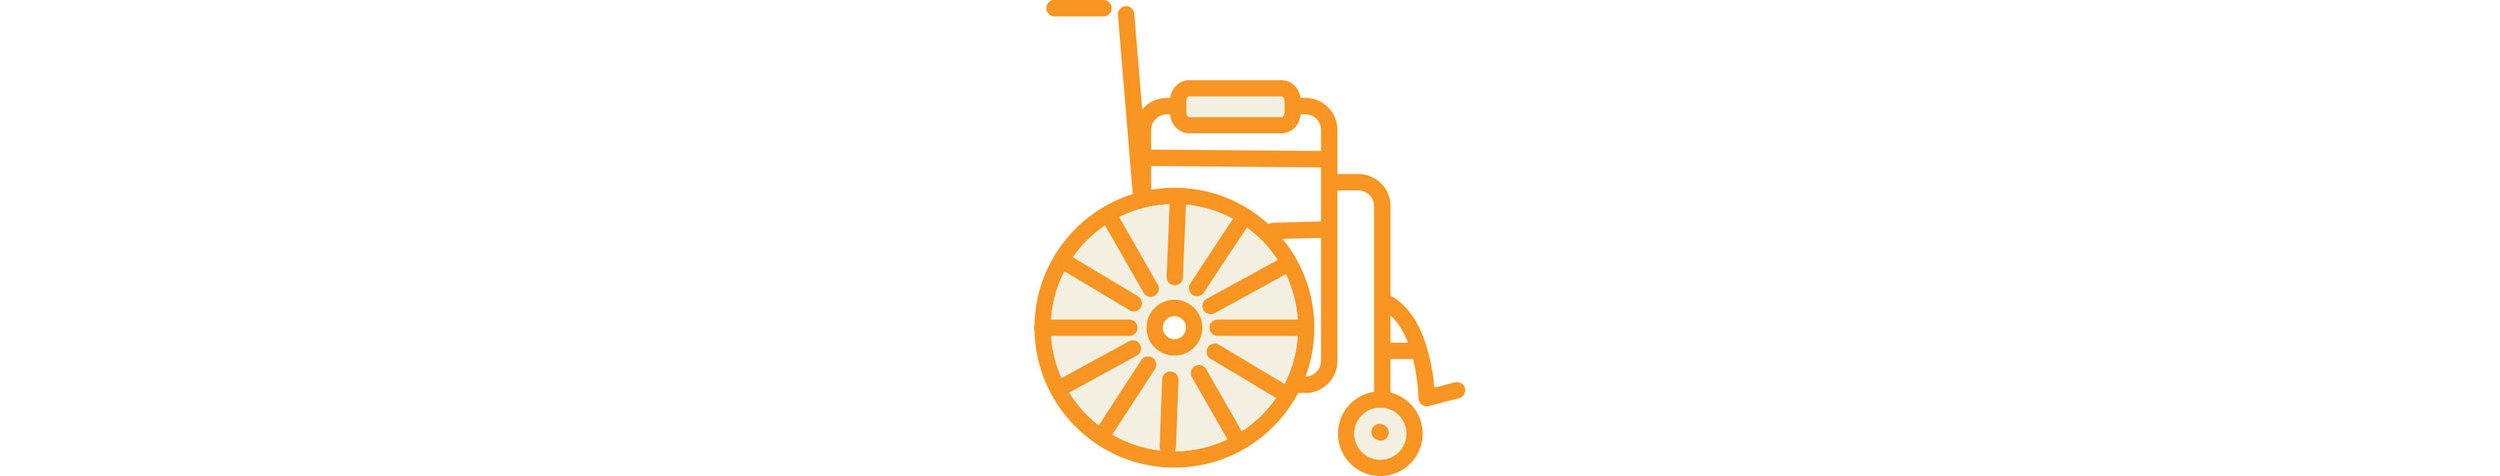 wheelchair-icon.jpg